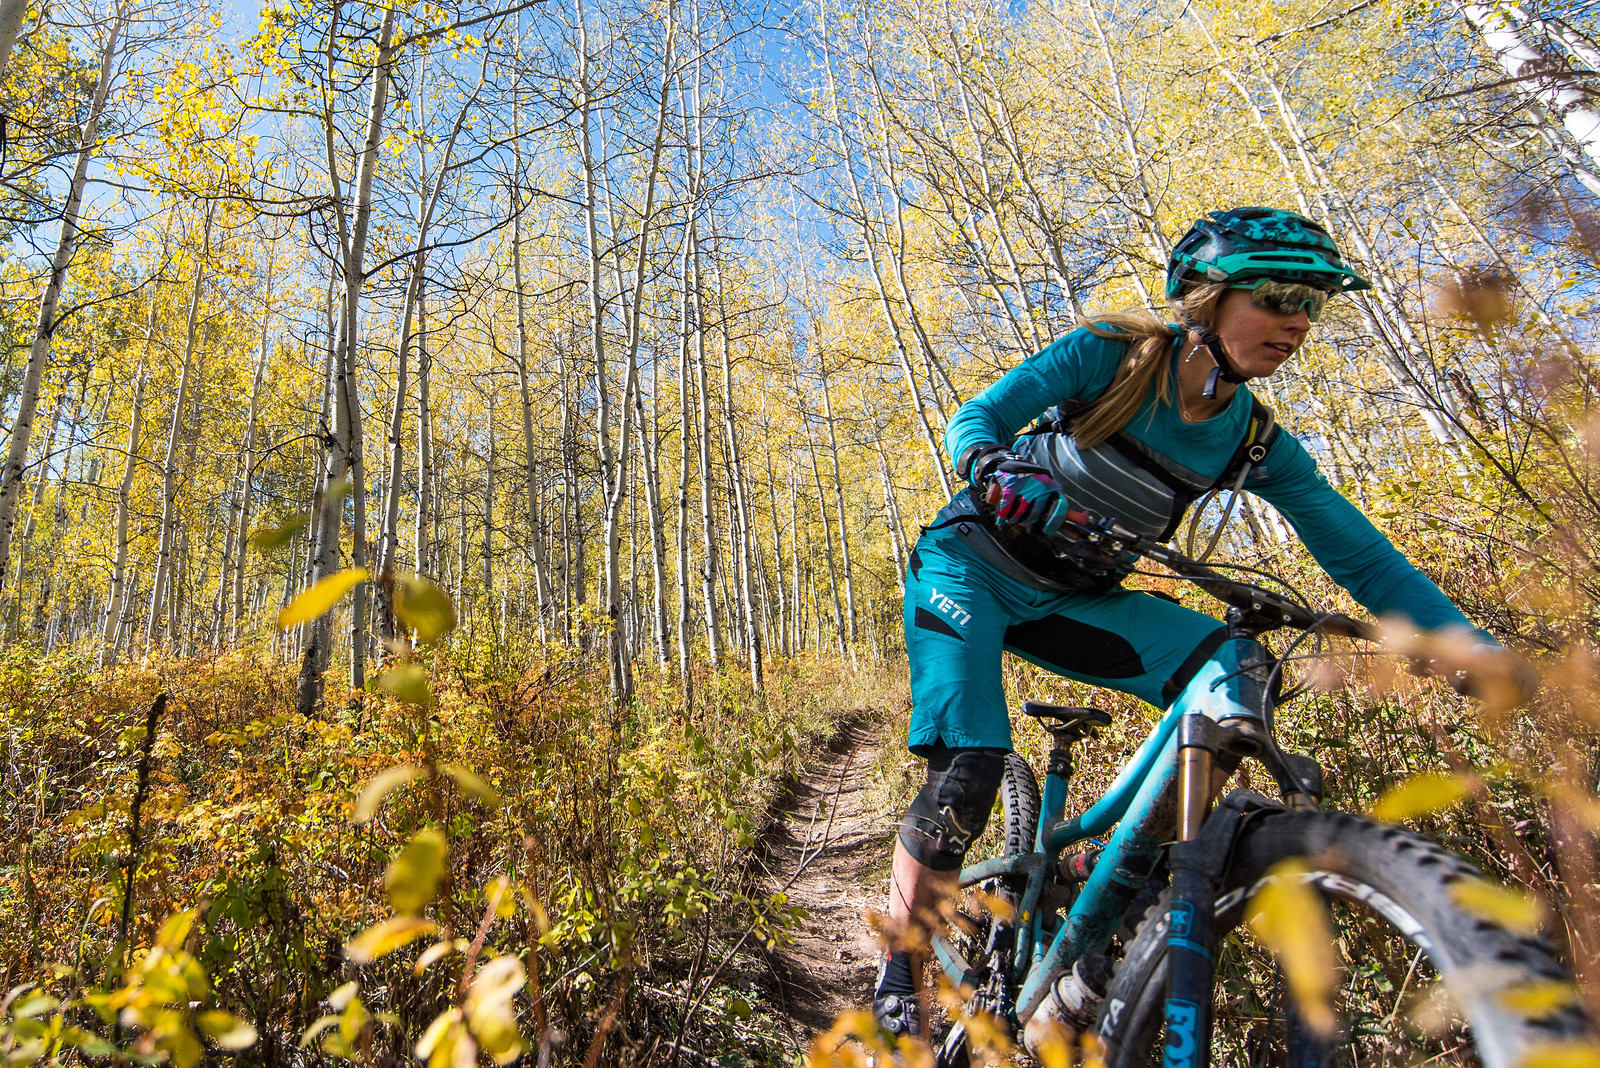 All time... - russellpj - Mountain Biking Pictures - Vital MTB